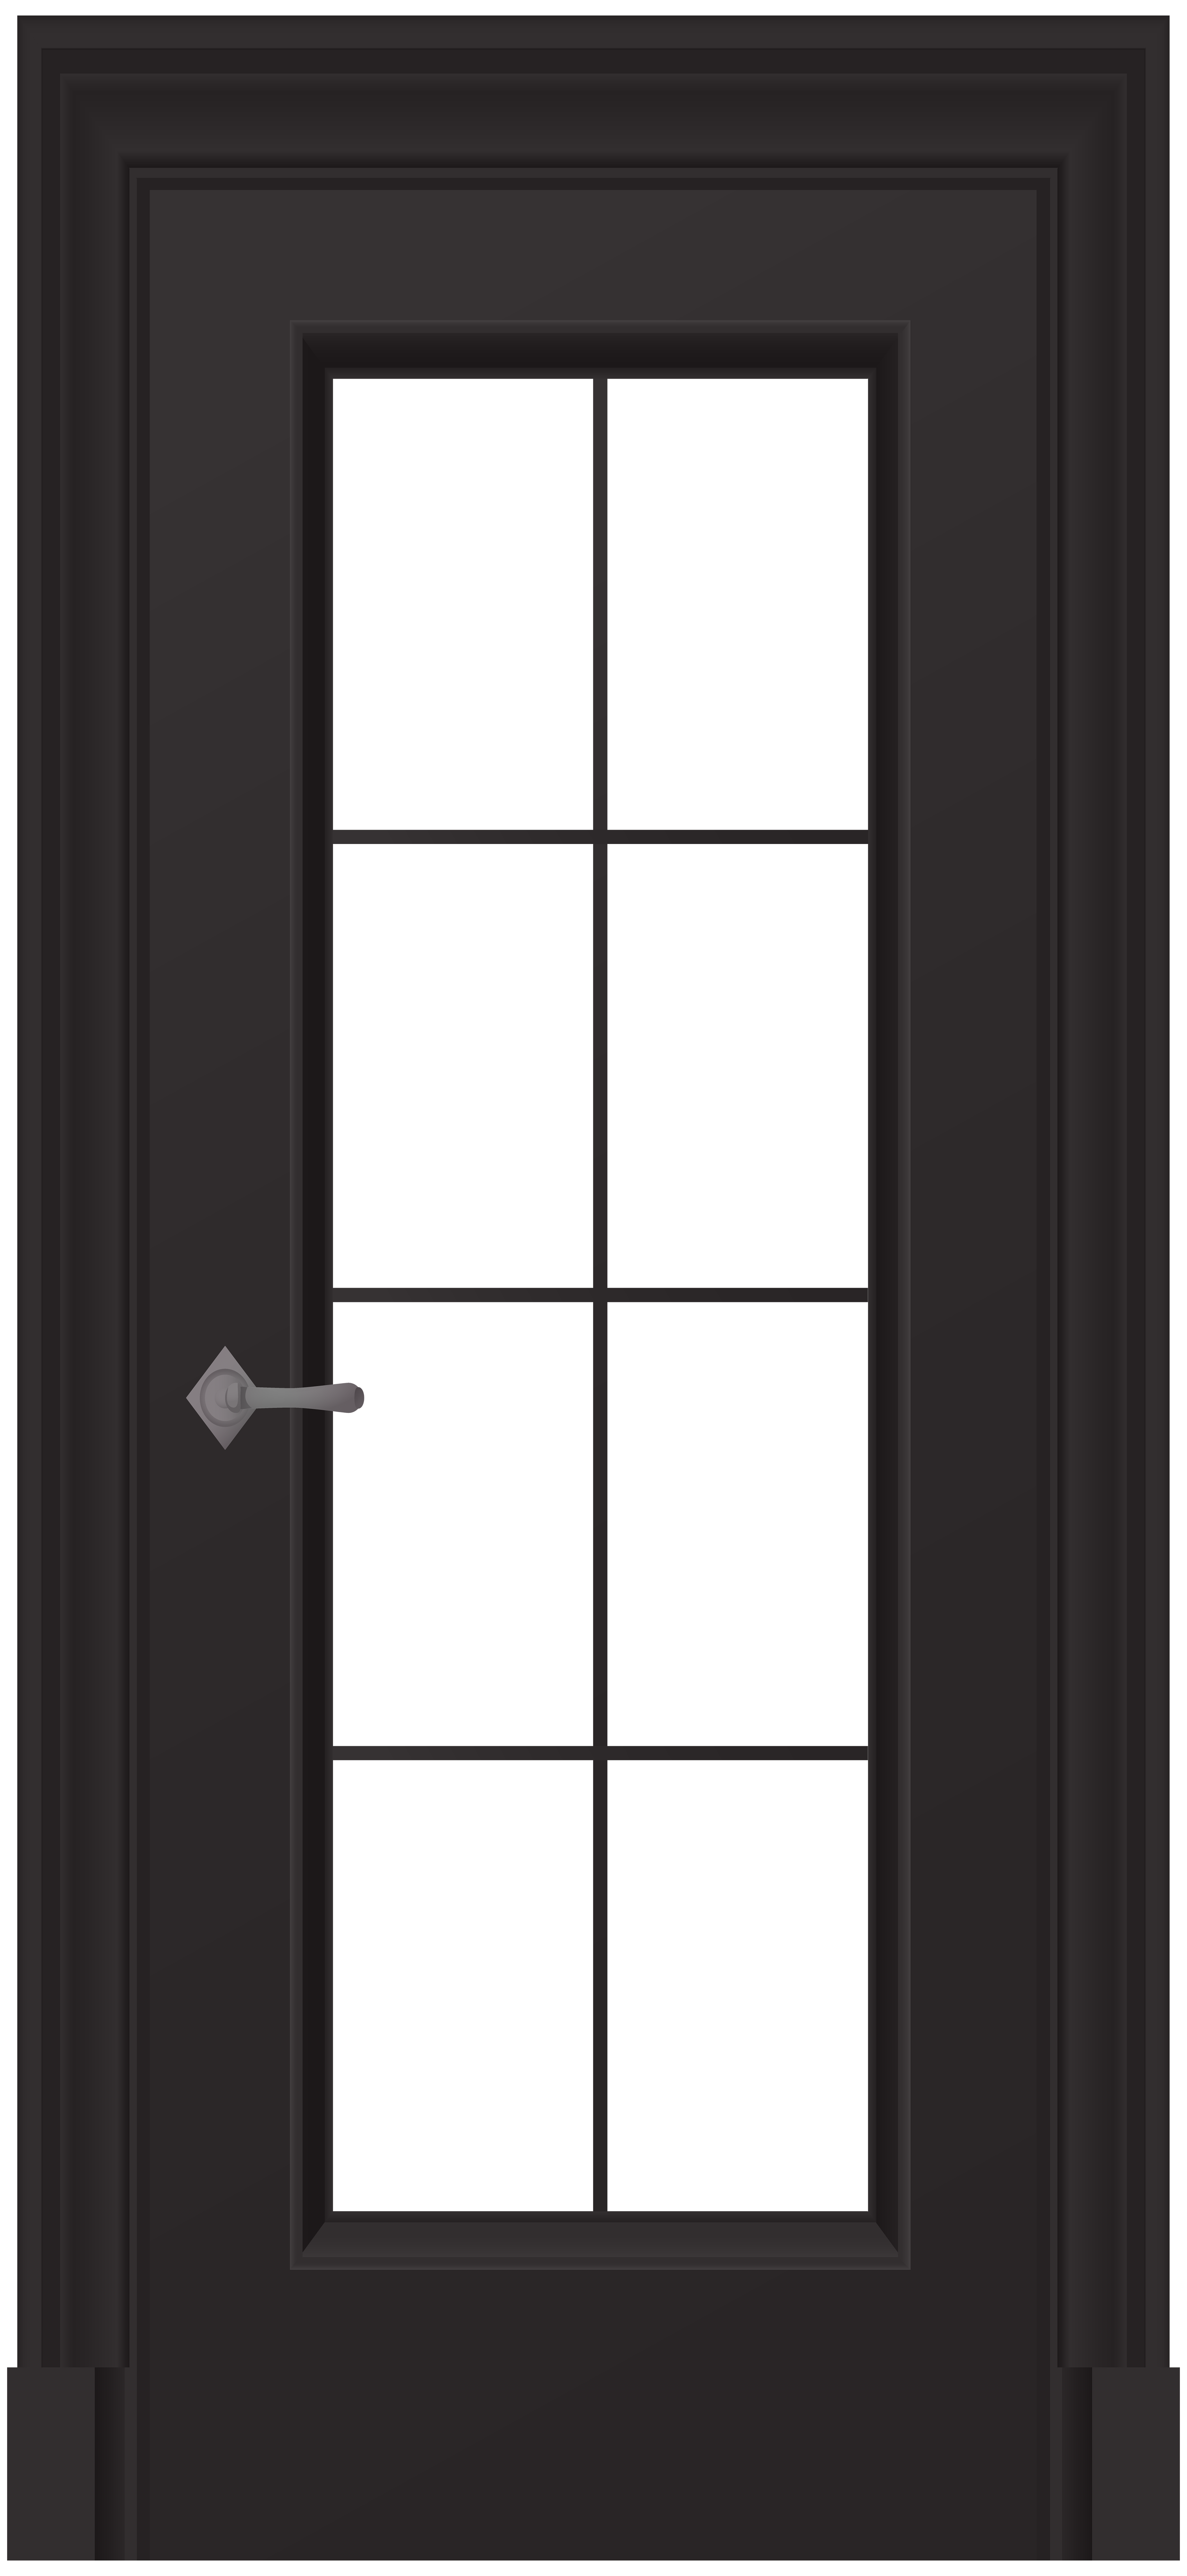 image library library Png clip art best. Door clipart black and white